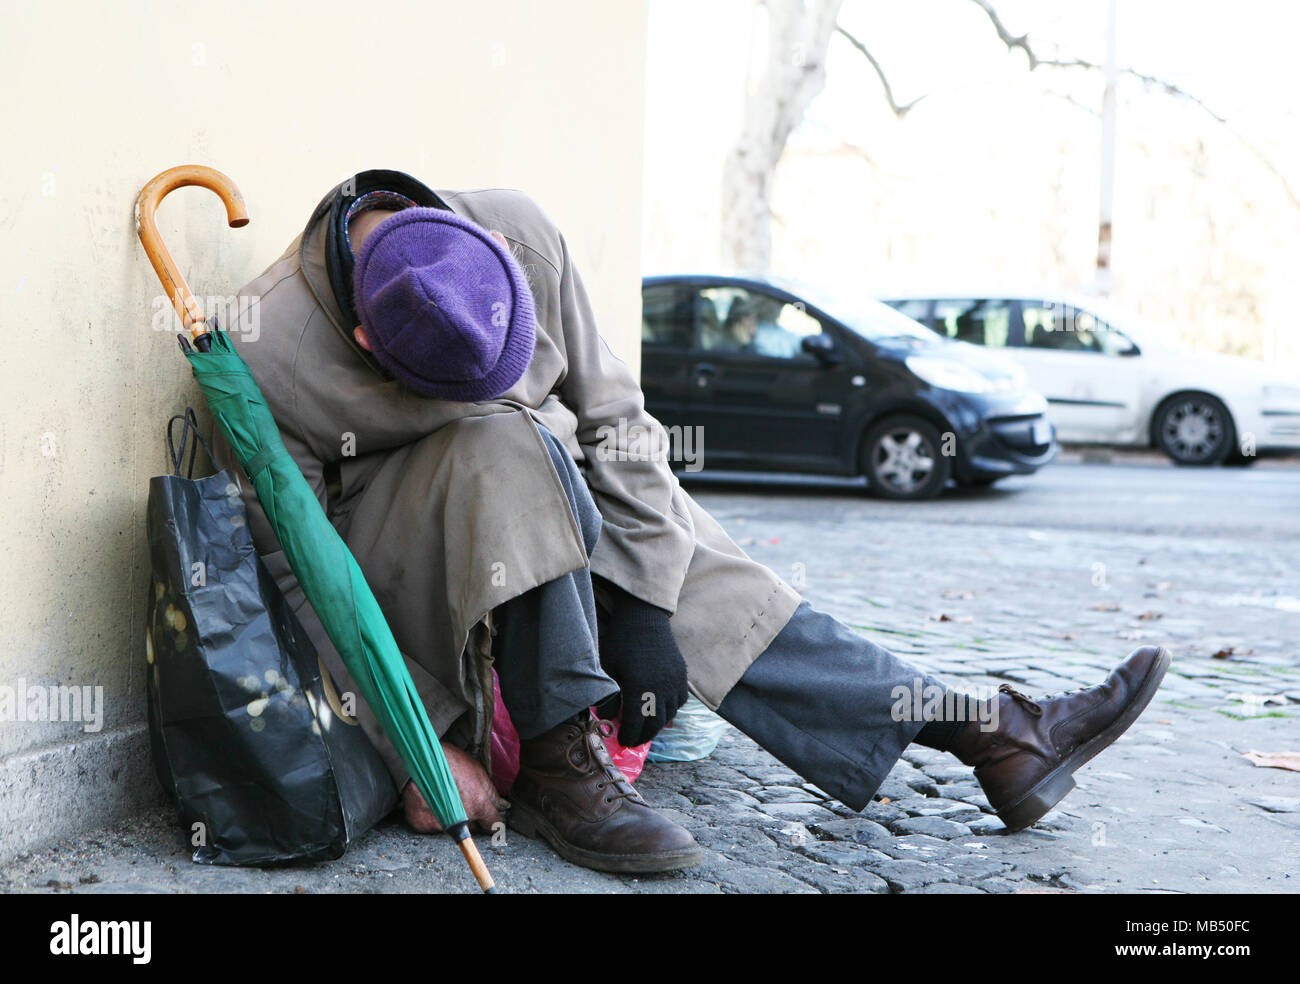 Homeless with hat, umbrella, and bag sleeping in the street in a plastic position - Stock Image